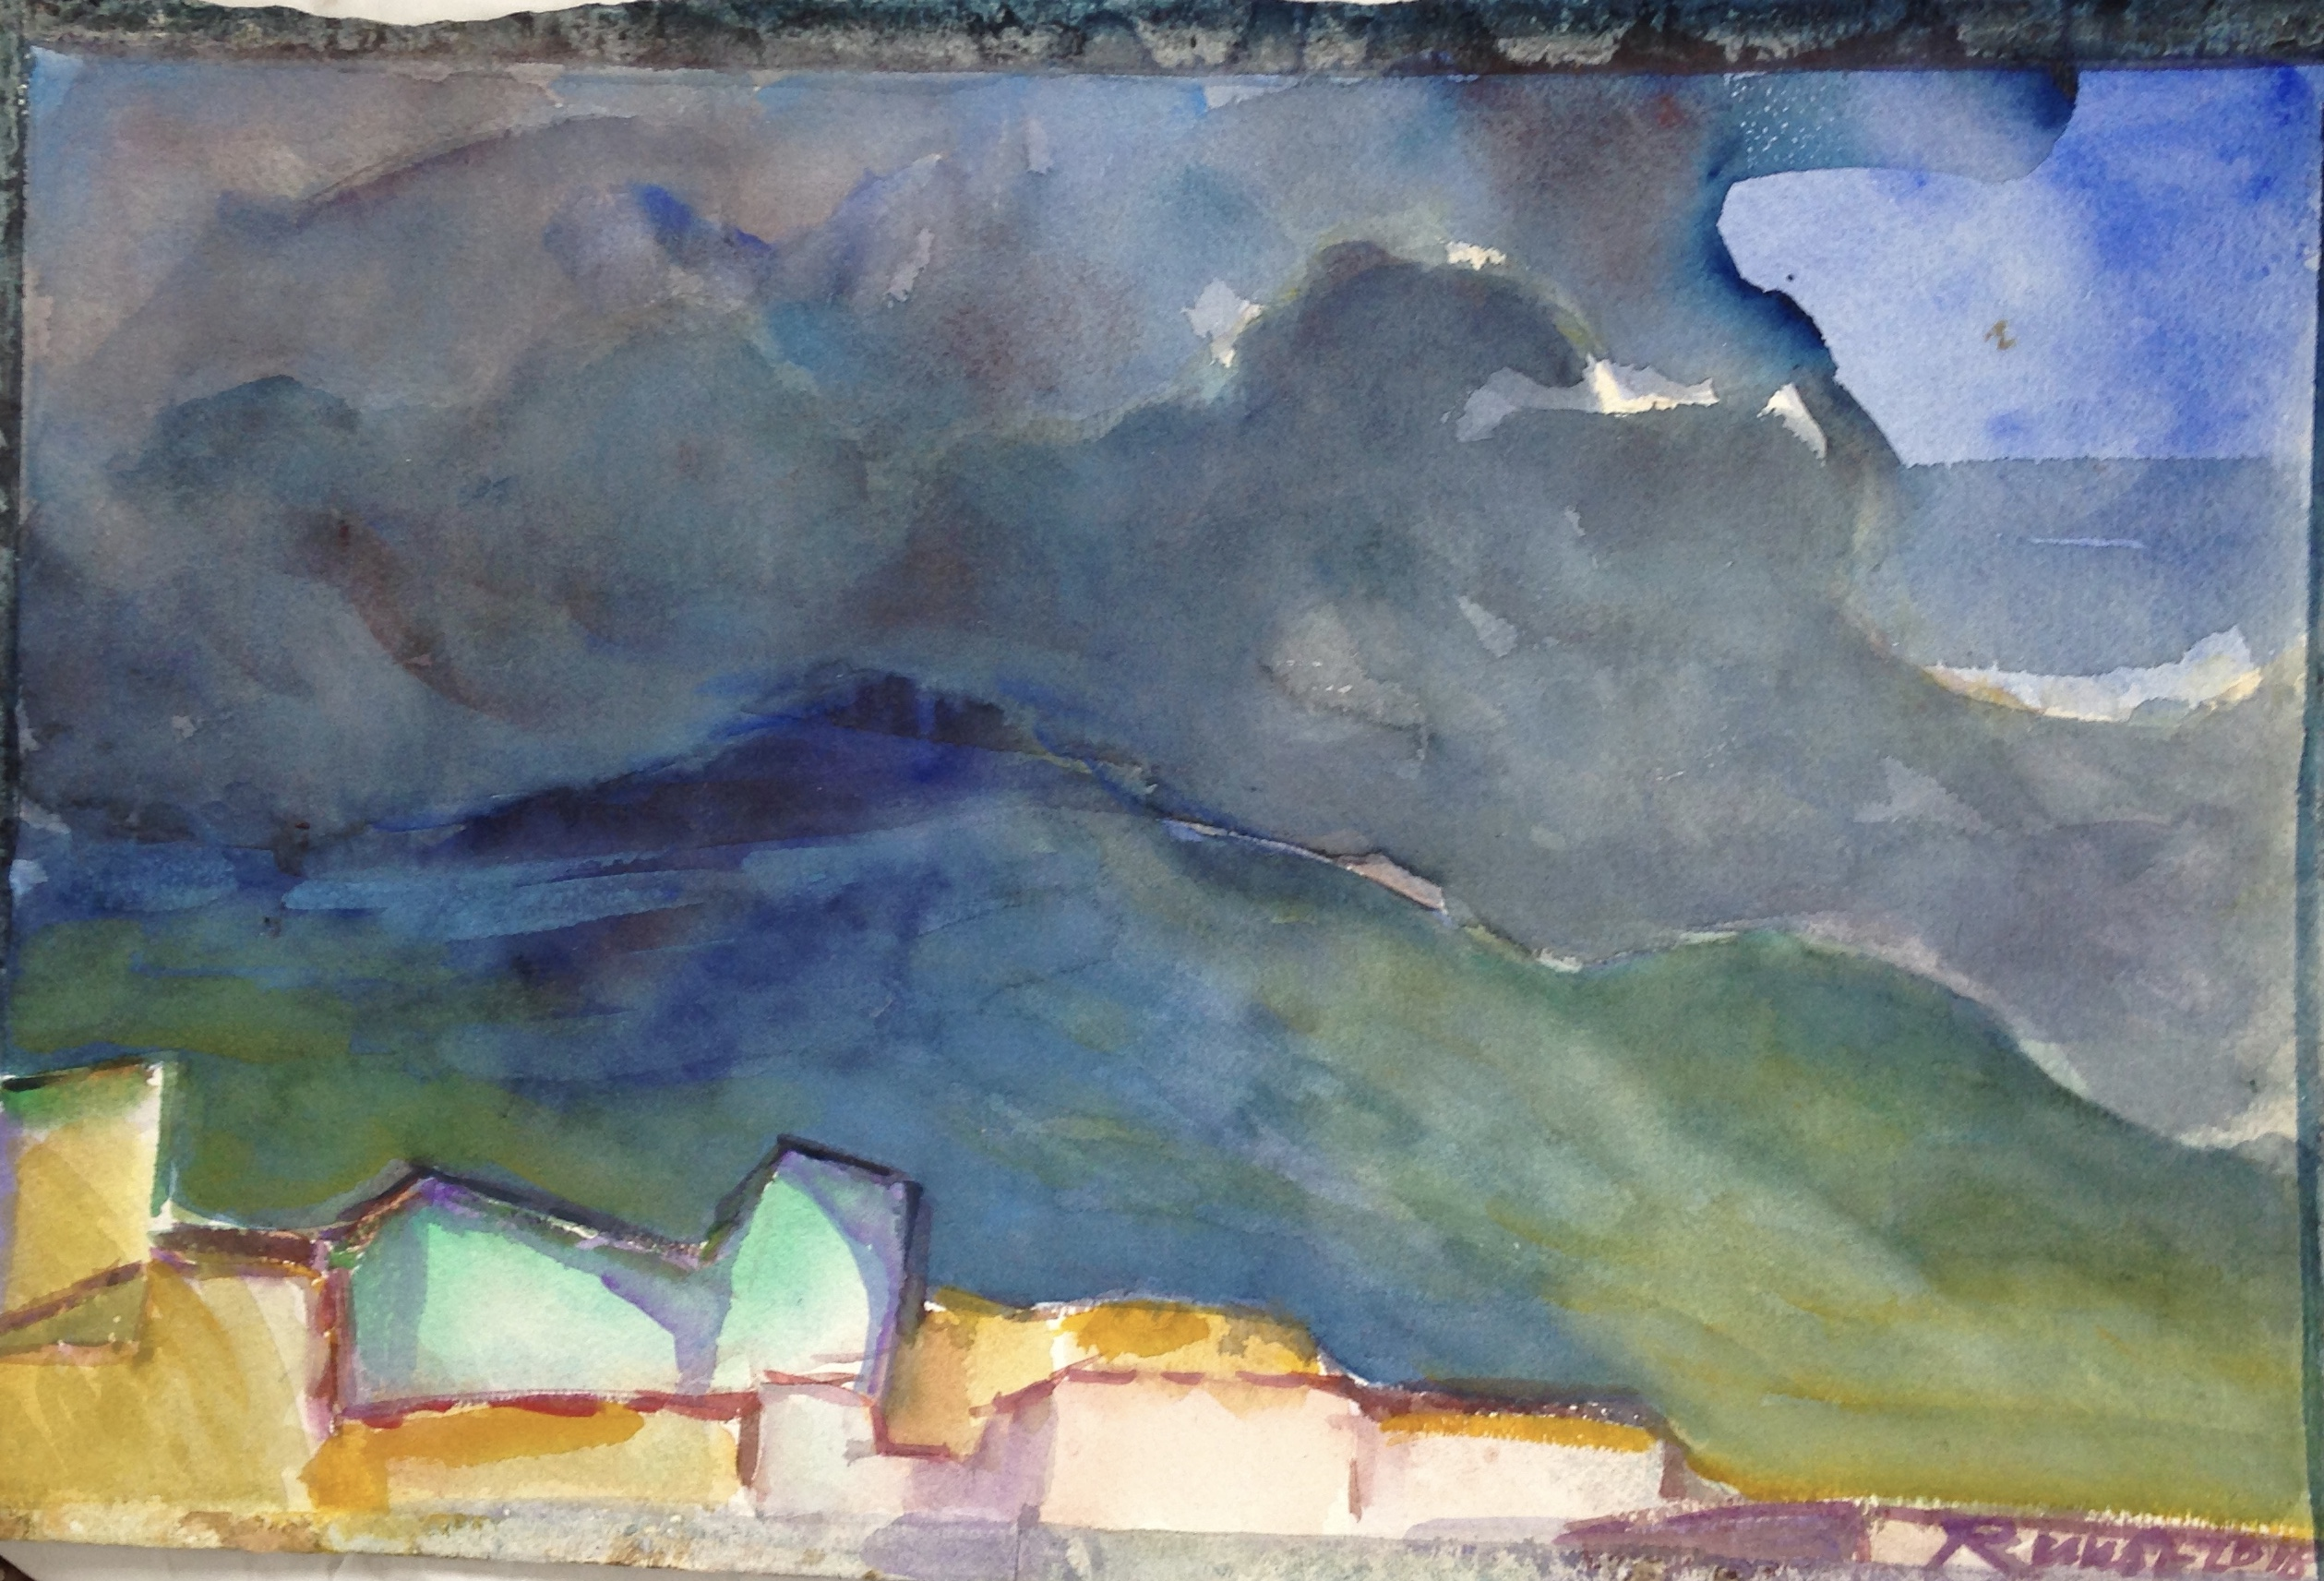 quito ''rainy weather'' aquarelle  on Archpaper 53x35 cm 2018